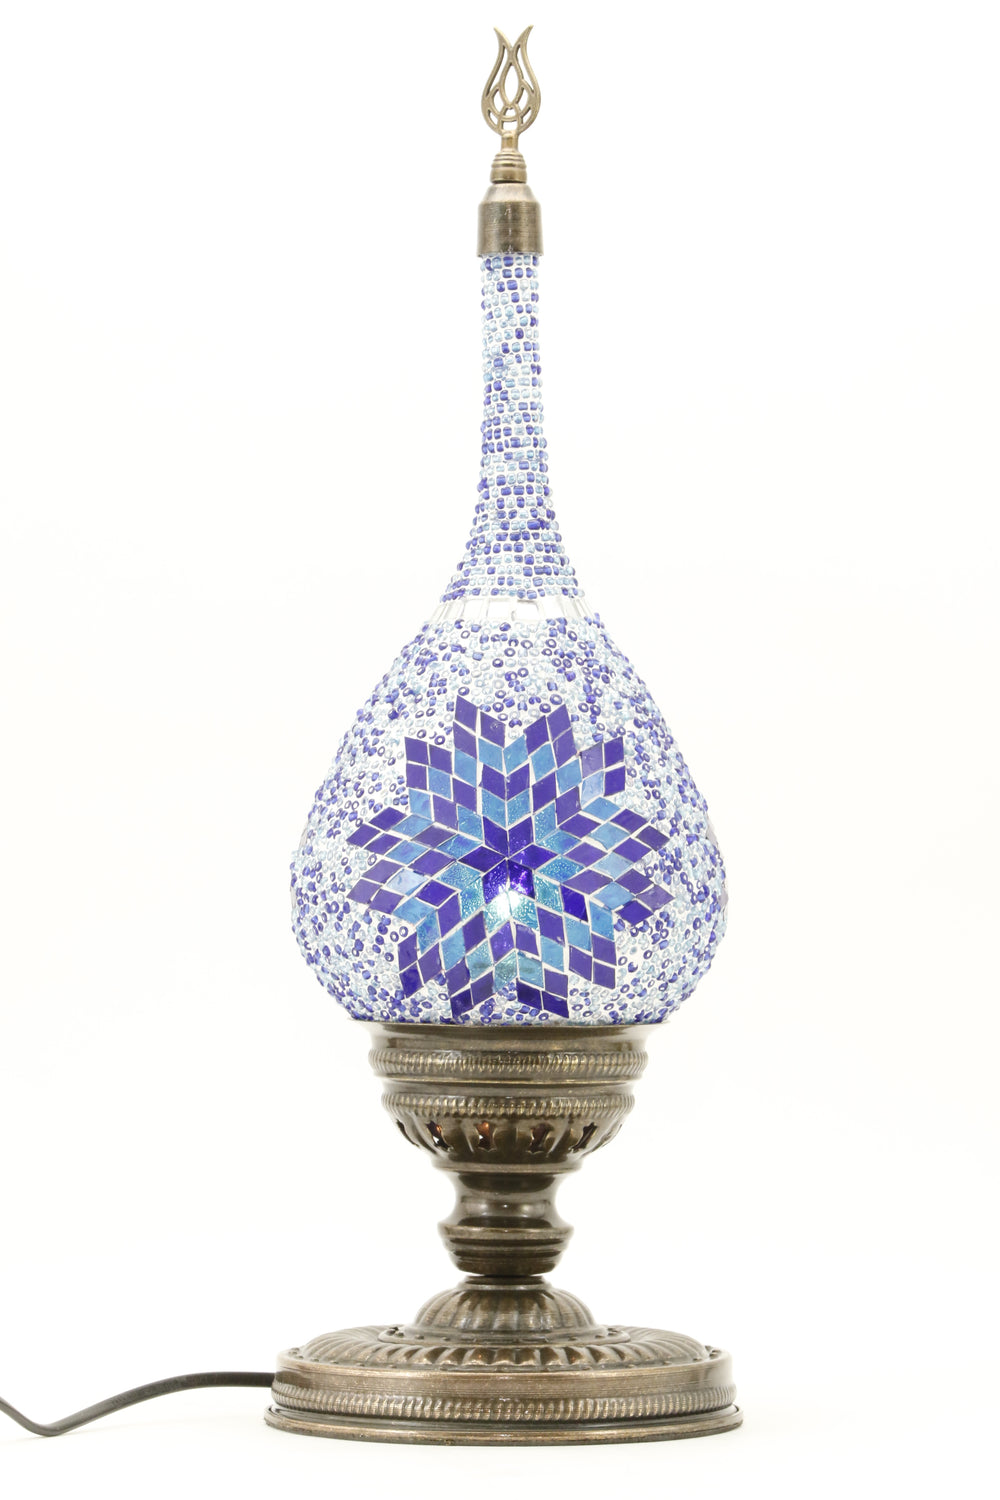 TEAR DROP SHAPED TURKISH MOSAIC TABE LAMP BLUE-TURNED ON